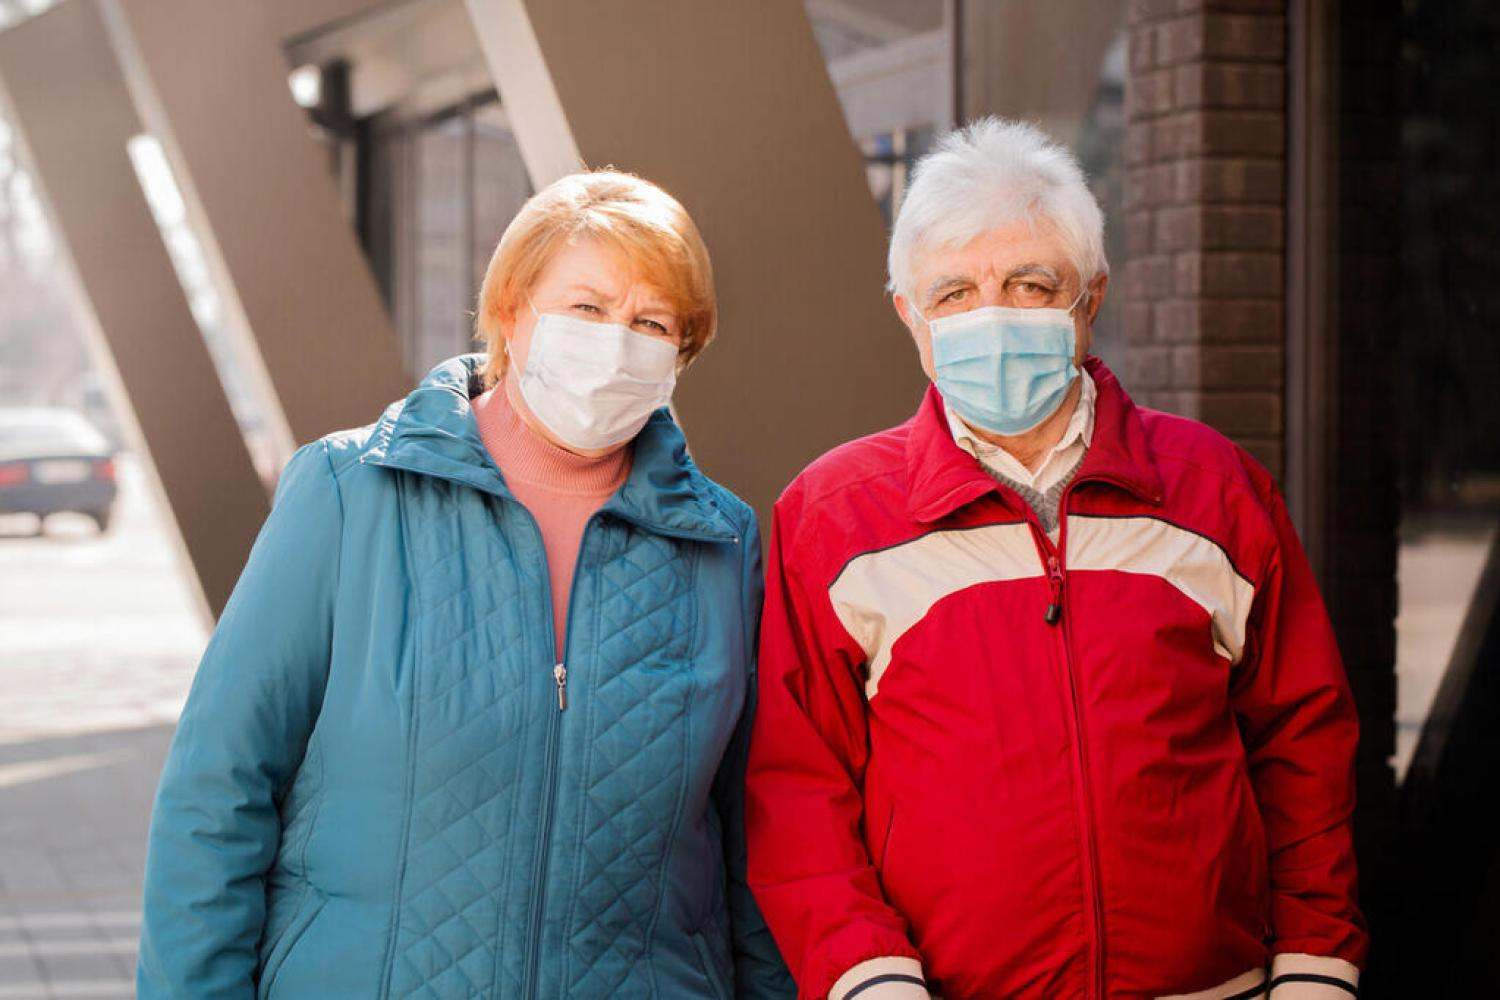 An elderly couple of people in protective masks. Coronavirus Protection Concept